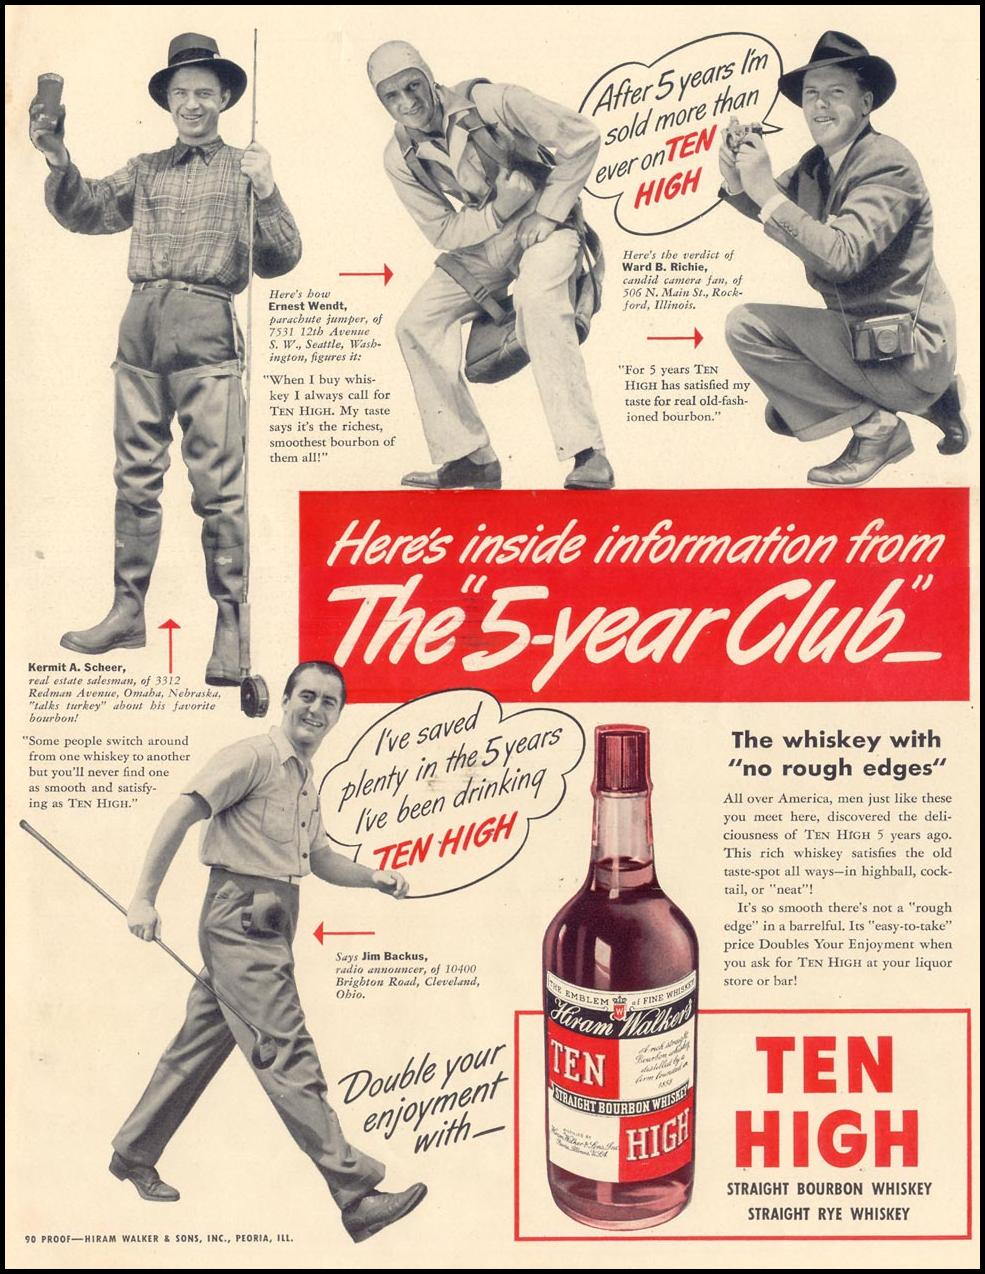 HIRAM WALKER'S TEN HIGH BOURBON WHISKEY LIFE 09/30/1940